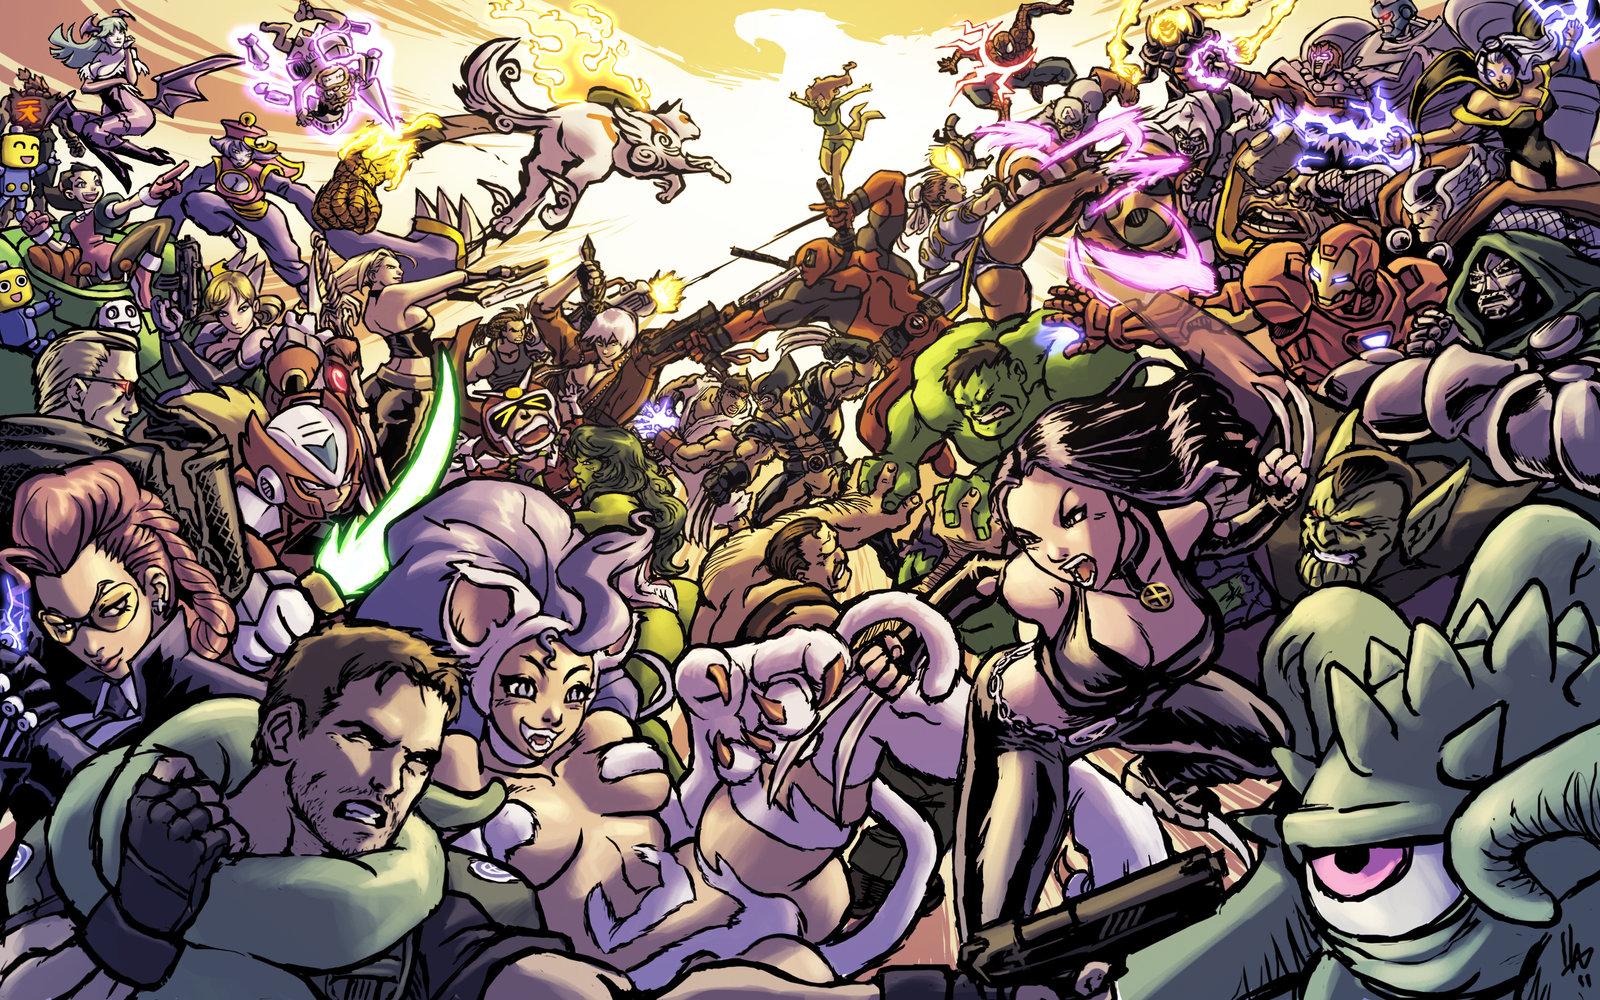 Free Download Fan Made Marvel Vs Capcom 3 Art Is Perfect As Your